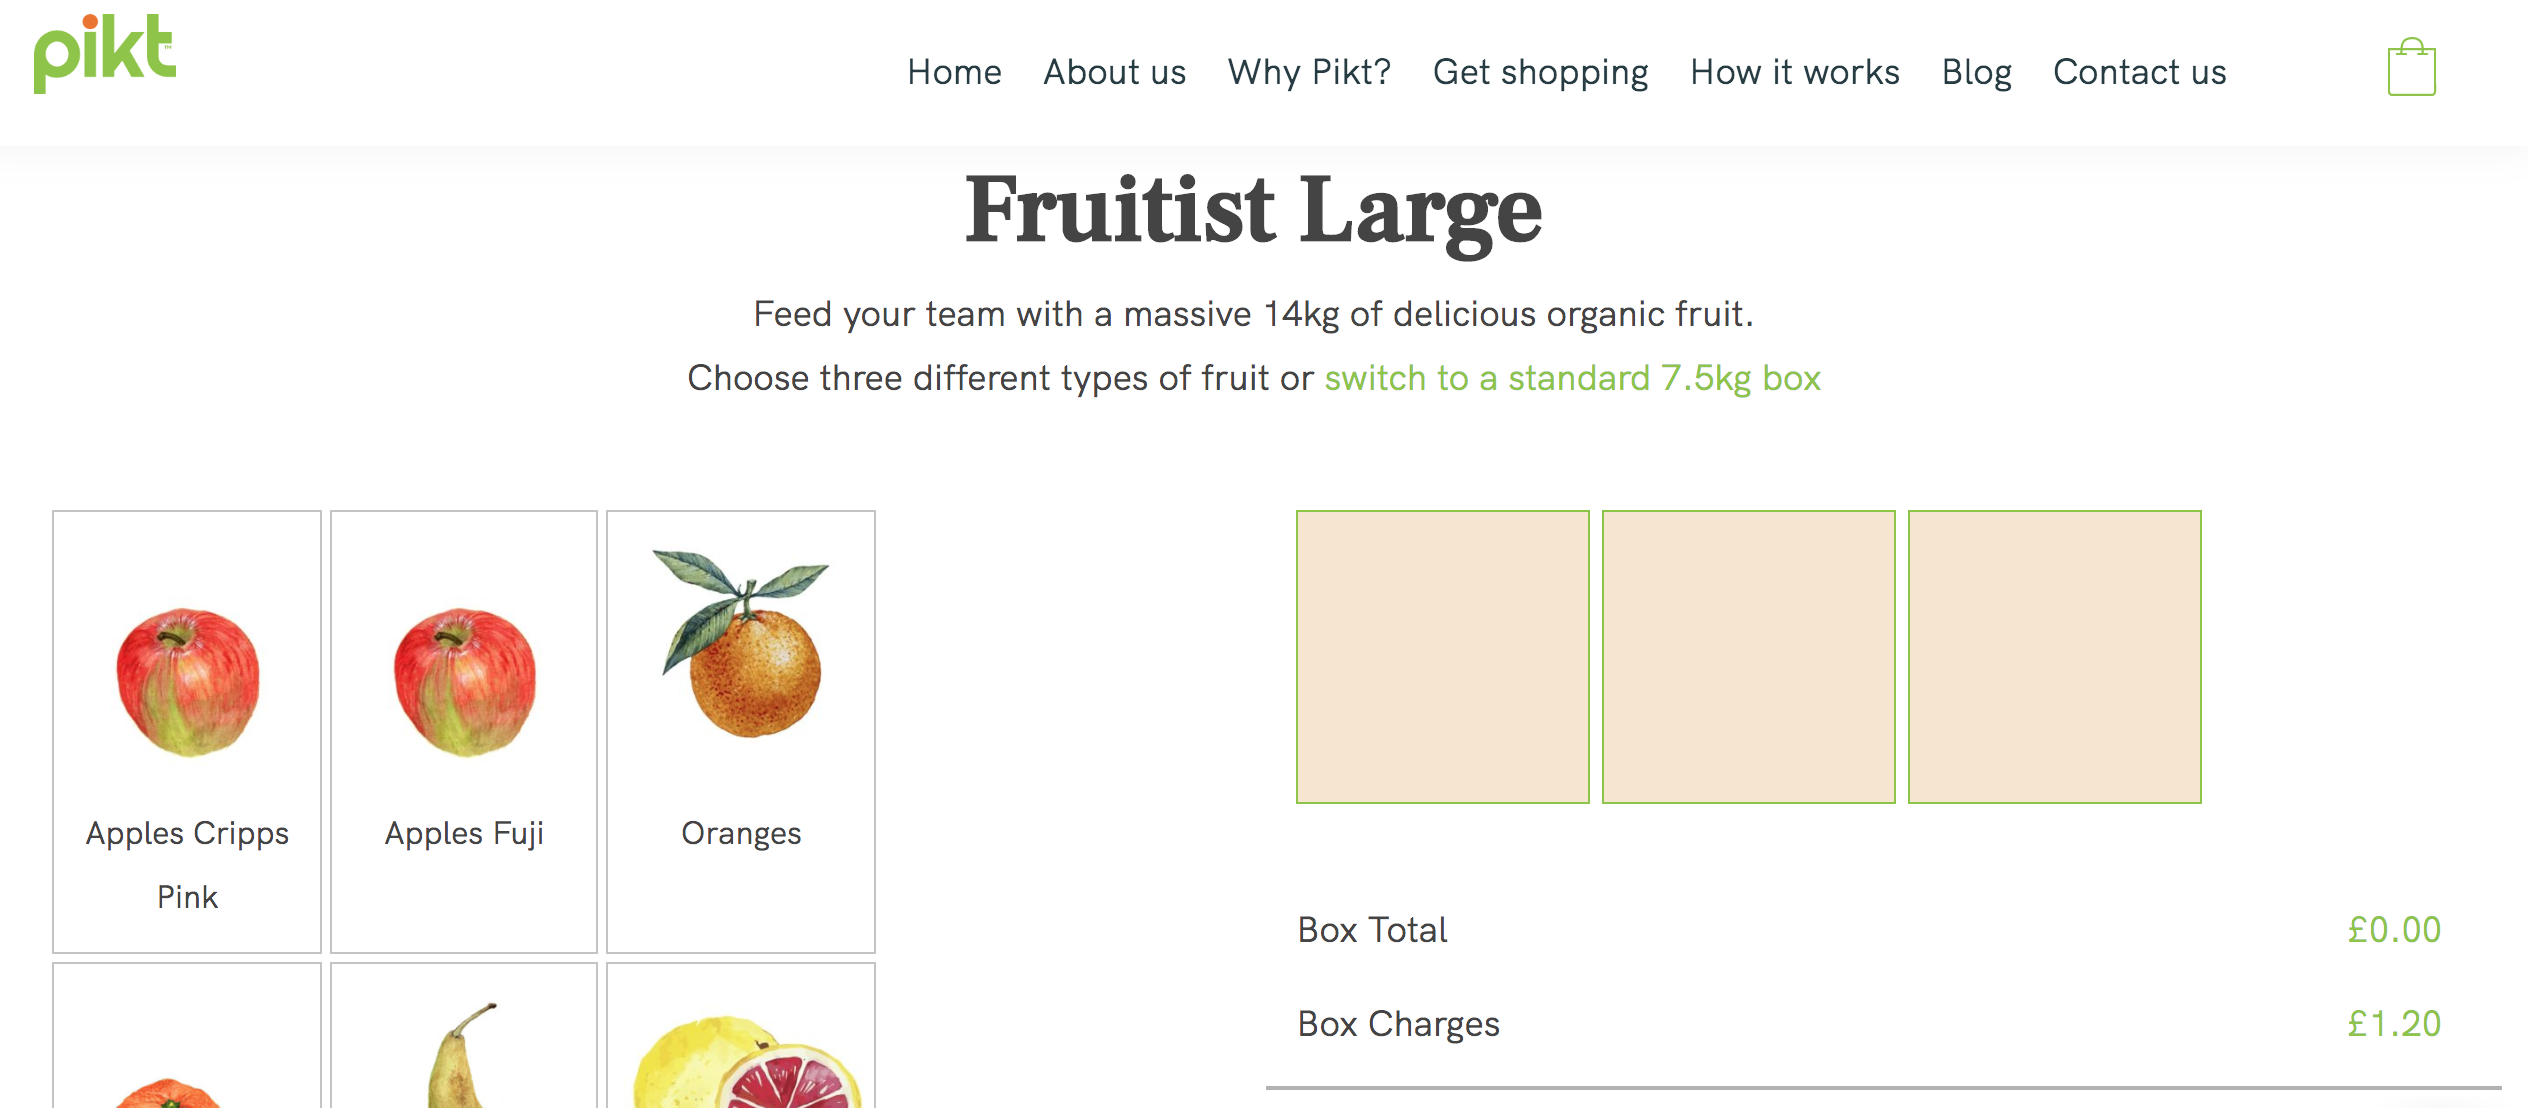 Pikt's 'fruitist' box for offices